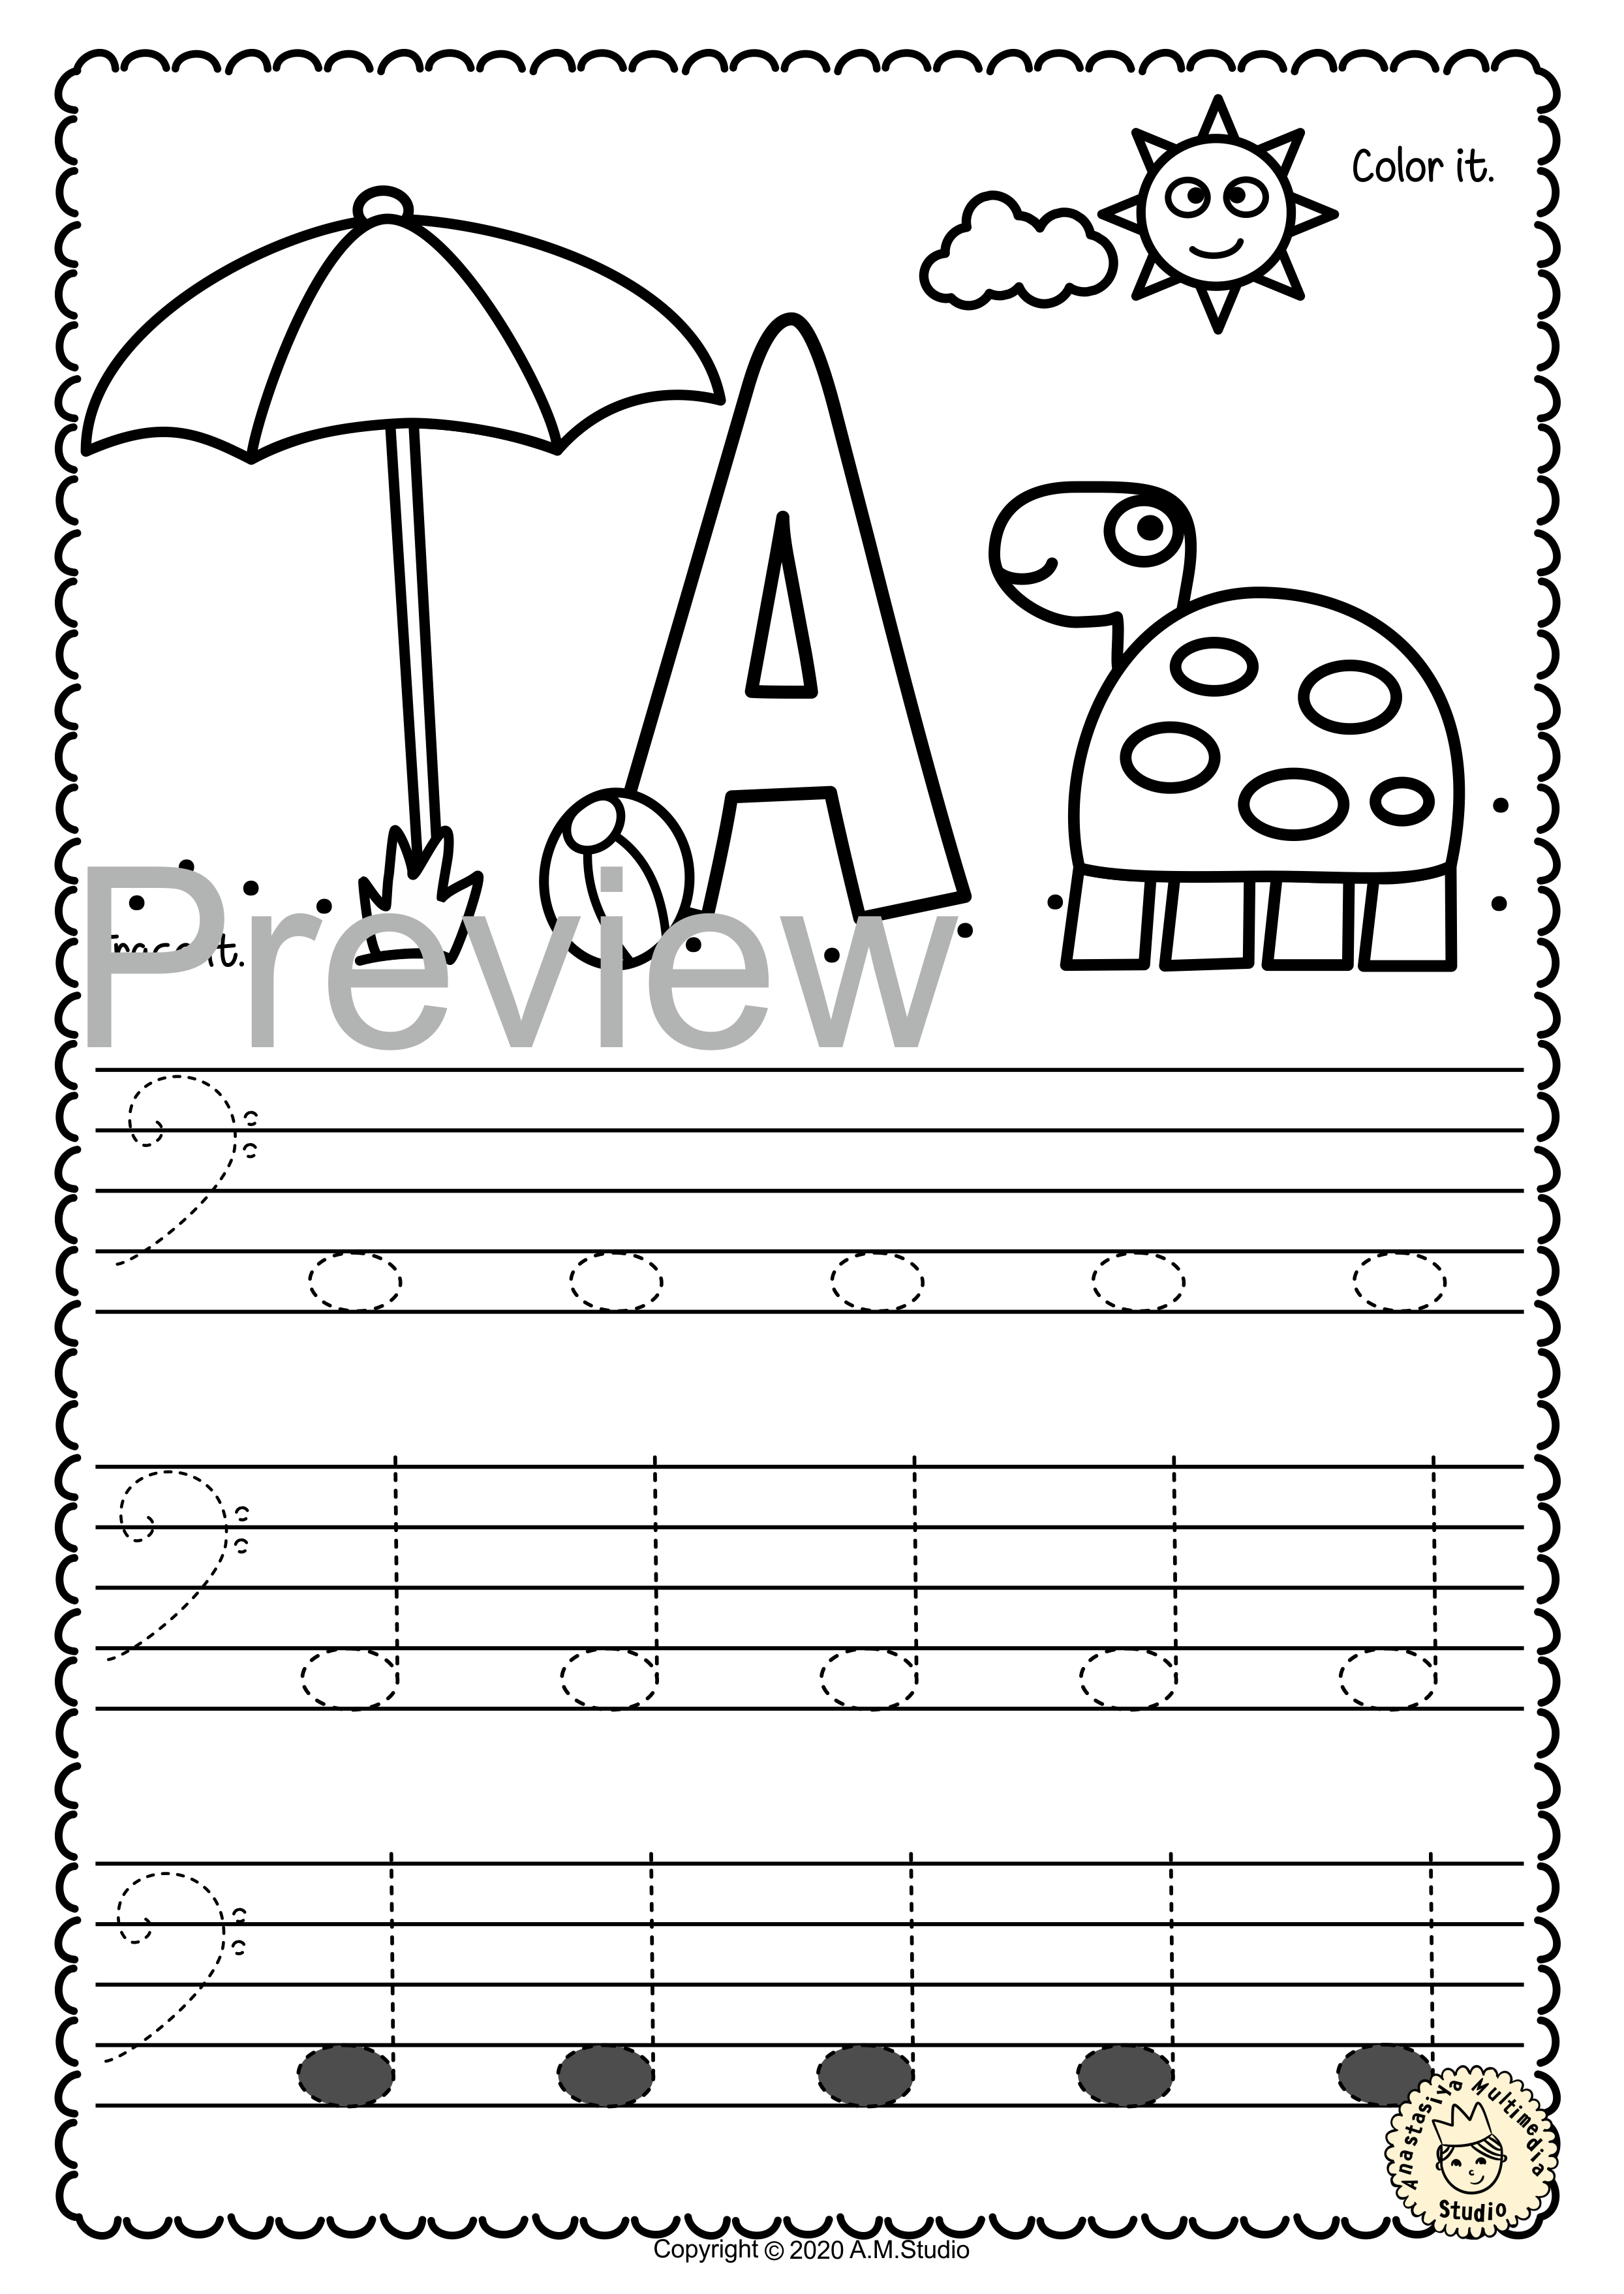 Bass Clef Tracing Music Notes Worksheets For Summer